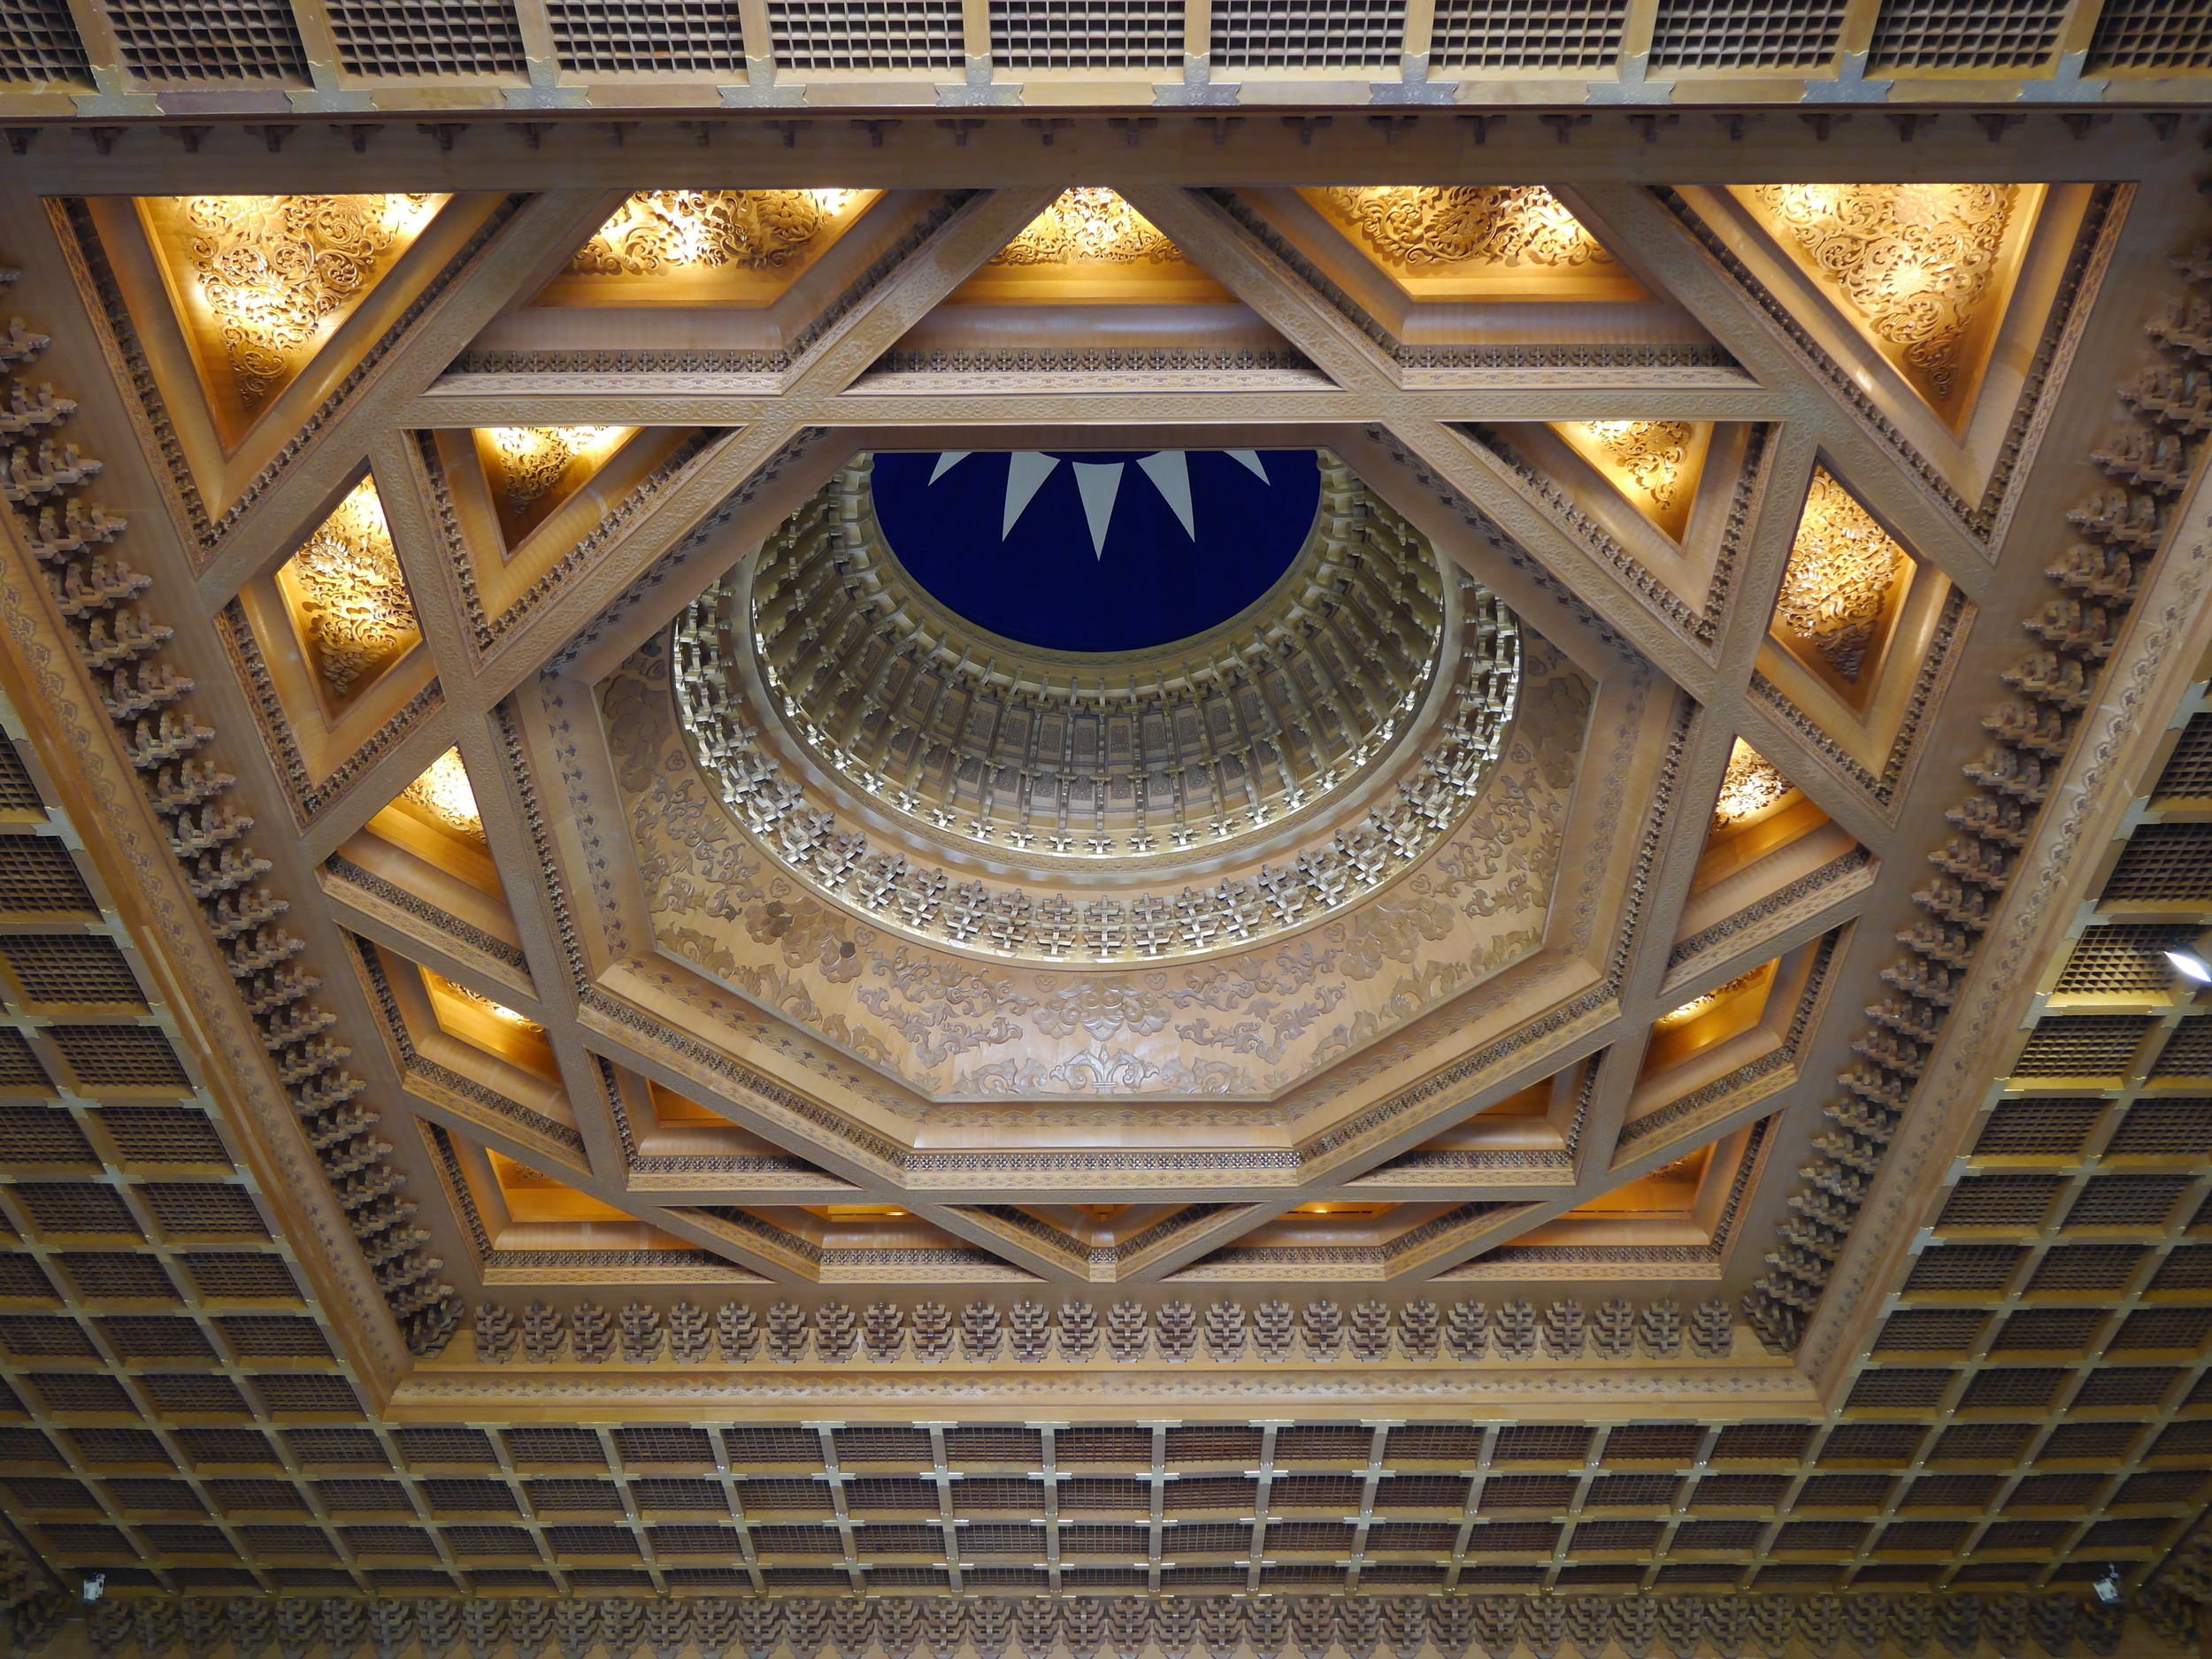 The gorgeous ceiling of the Chiang Kai-shek Memorial Hall.